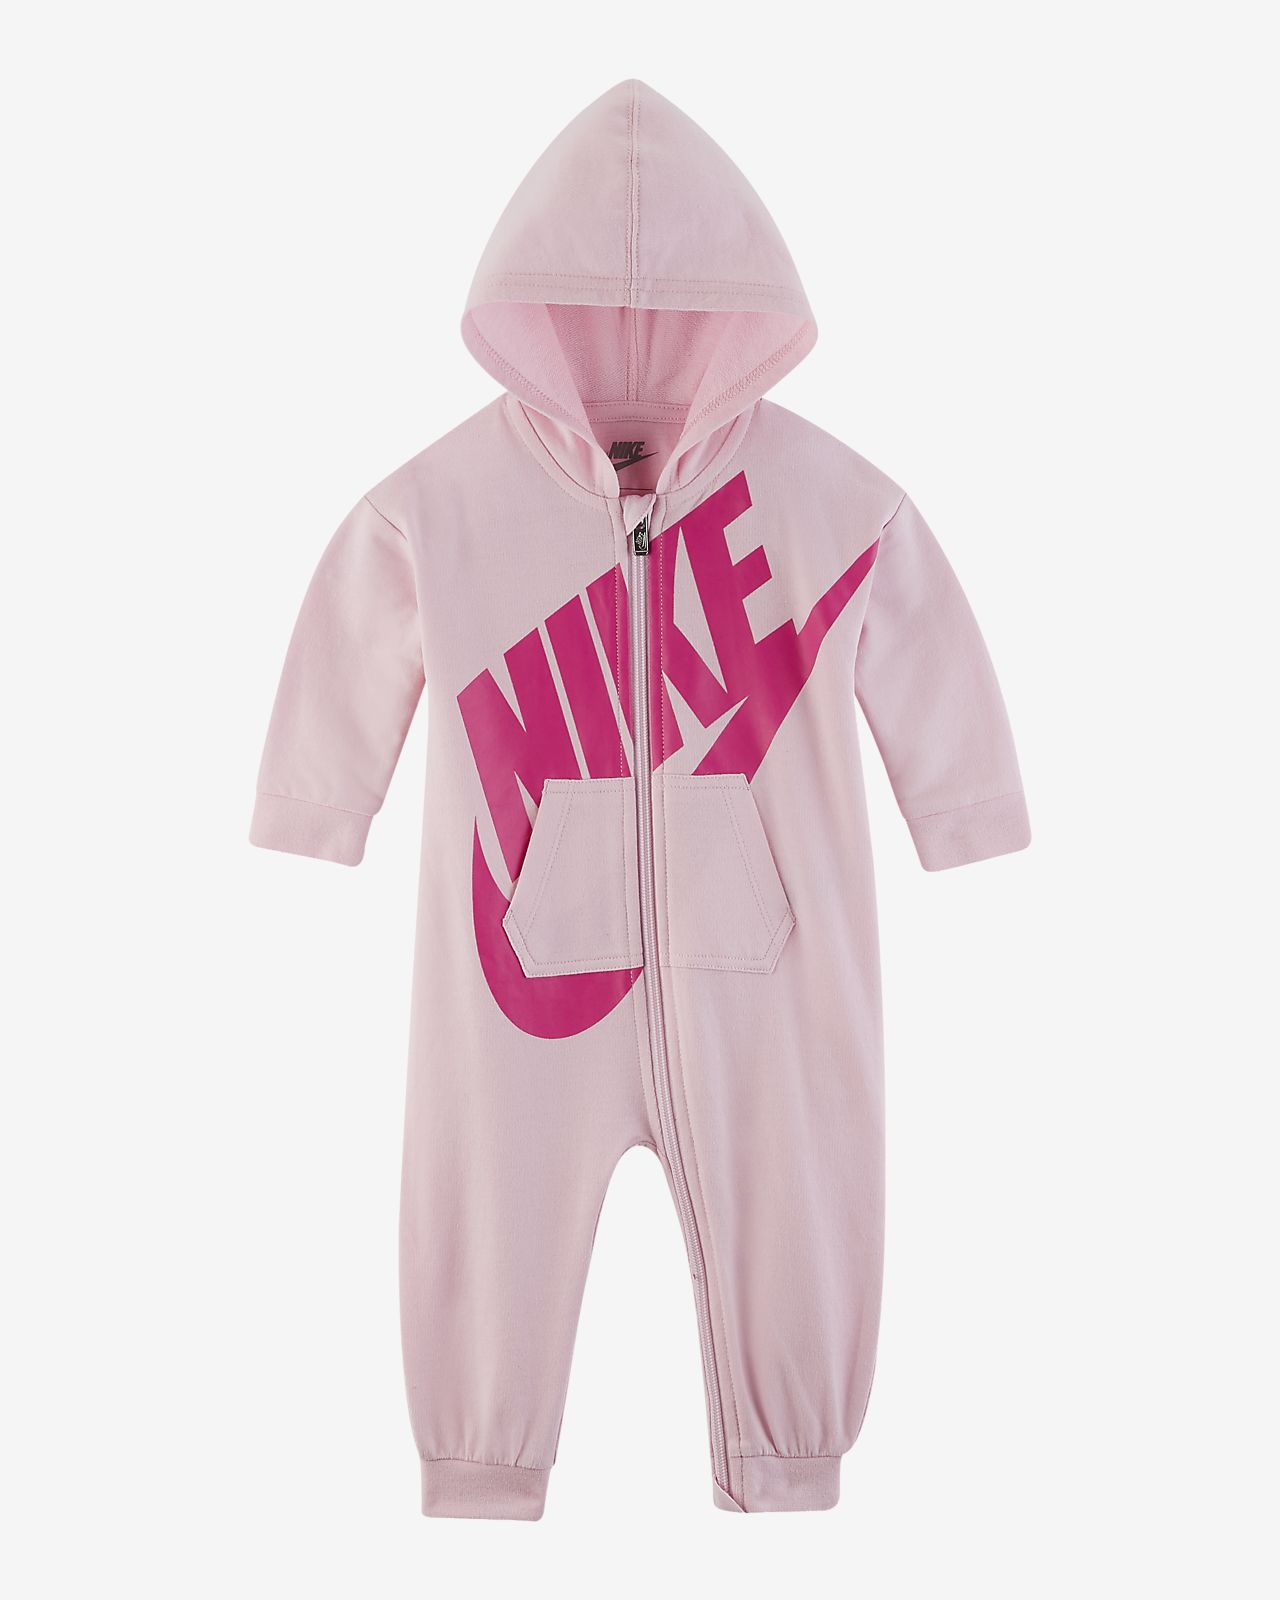 Nike Infant Coverall